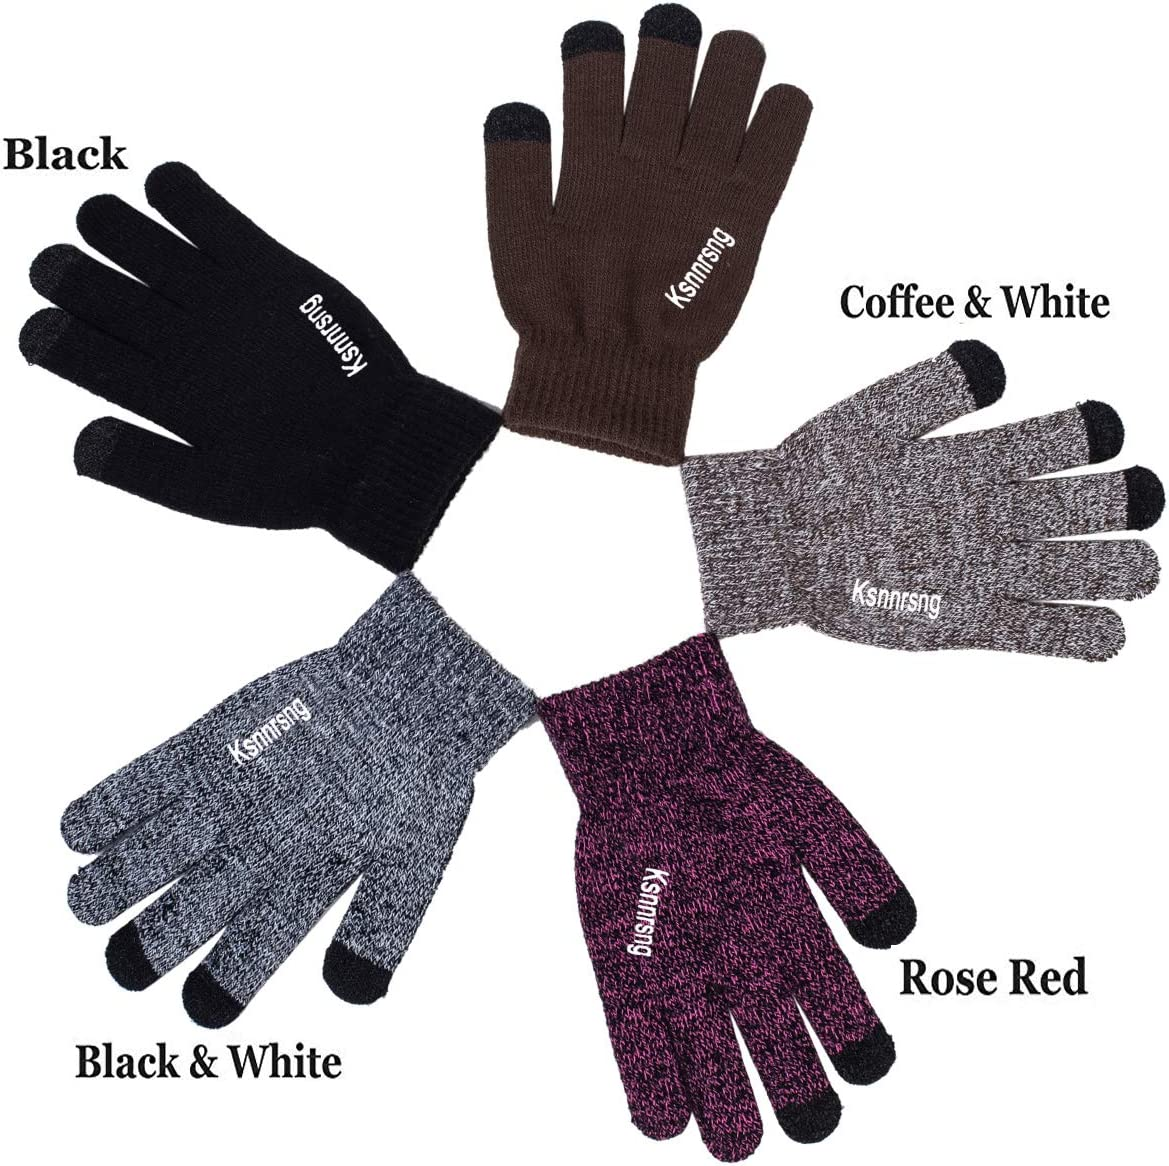 Ksnnrsng Winter Touchscreen Warm Knit Gloves for Women Men Thermal Wool Lined Texting Unisex